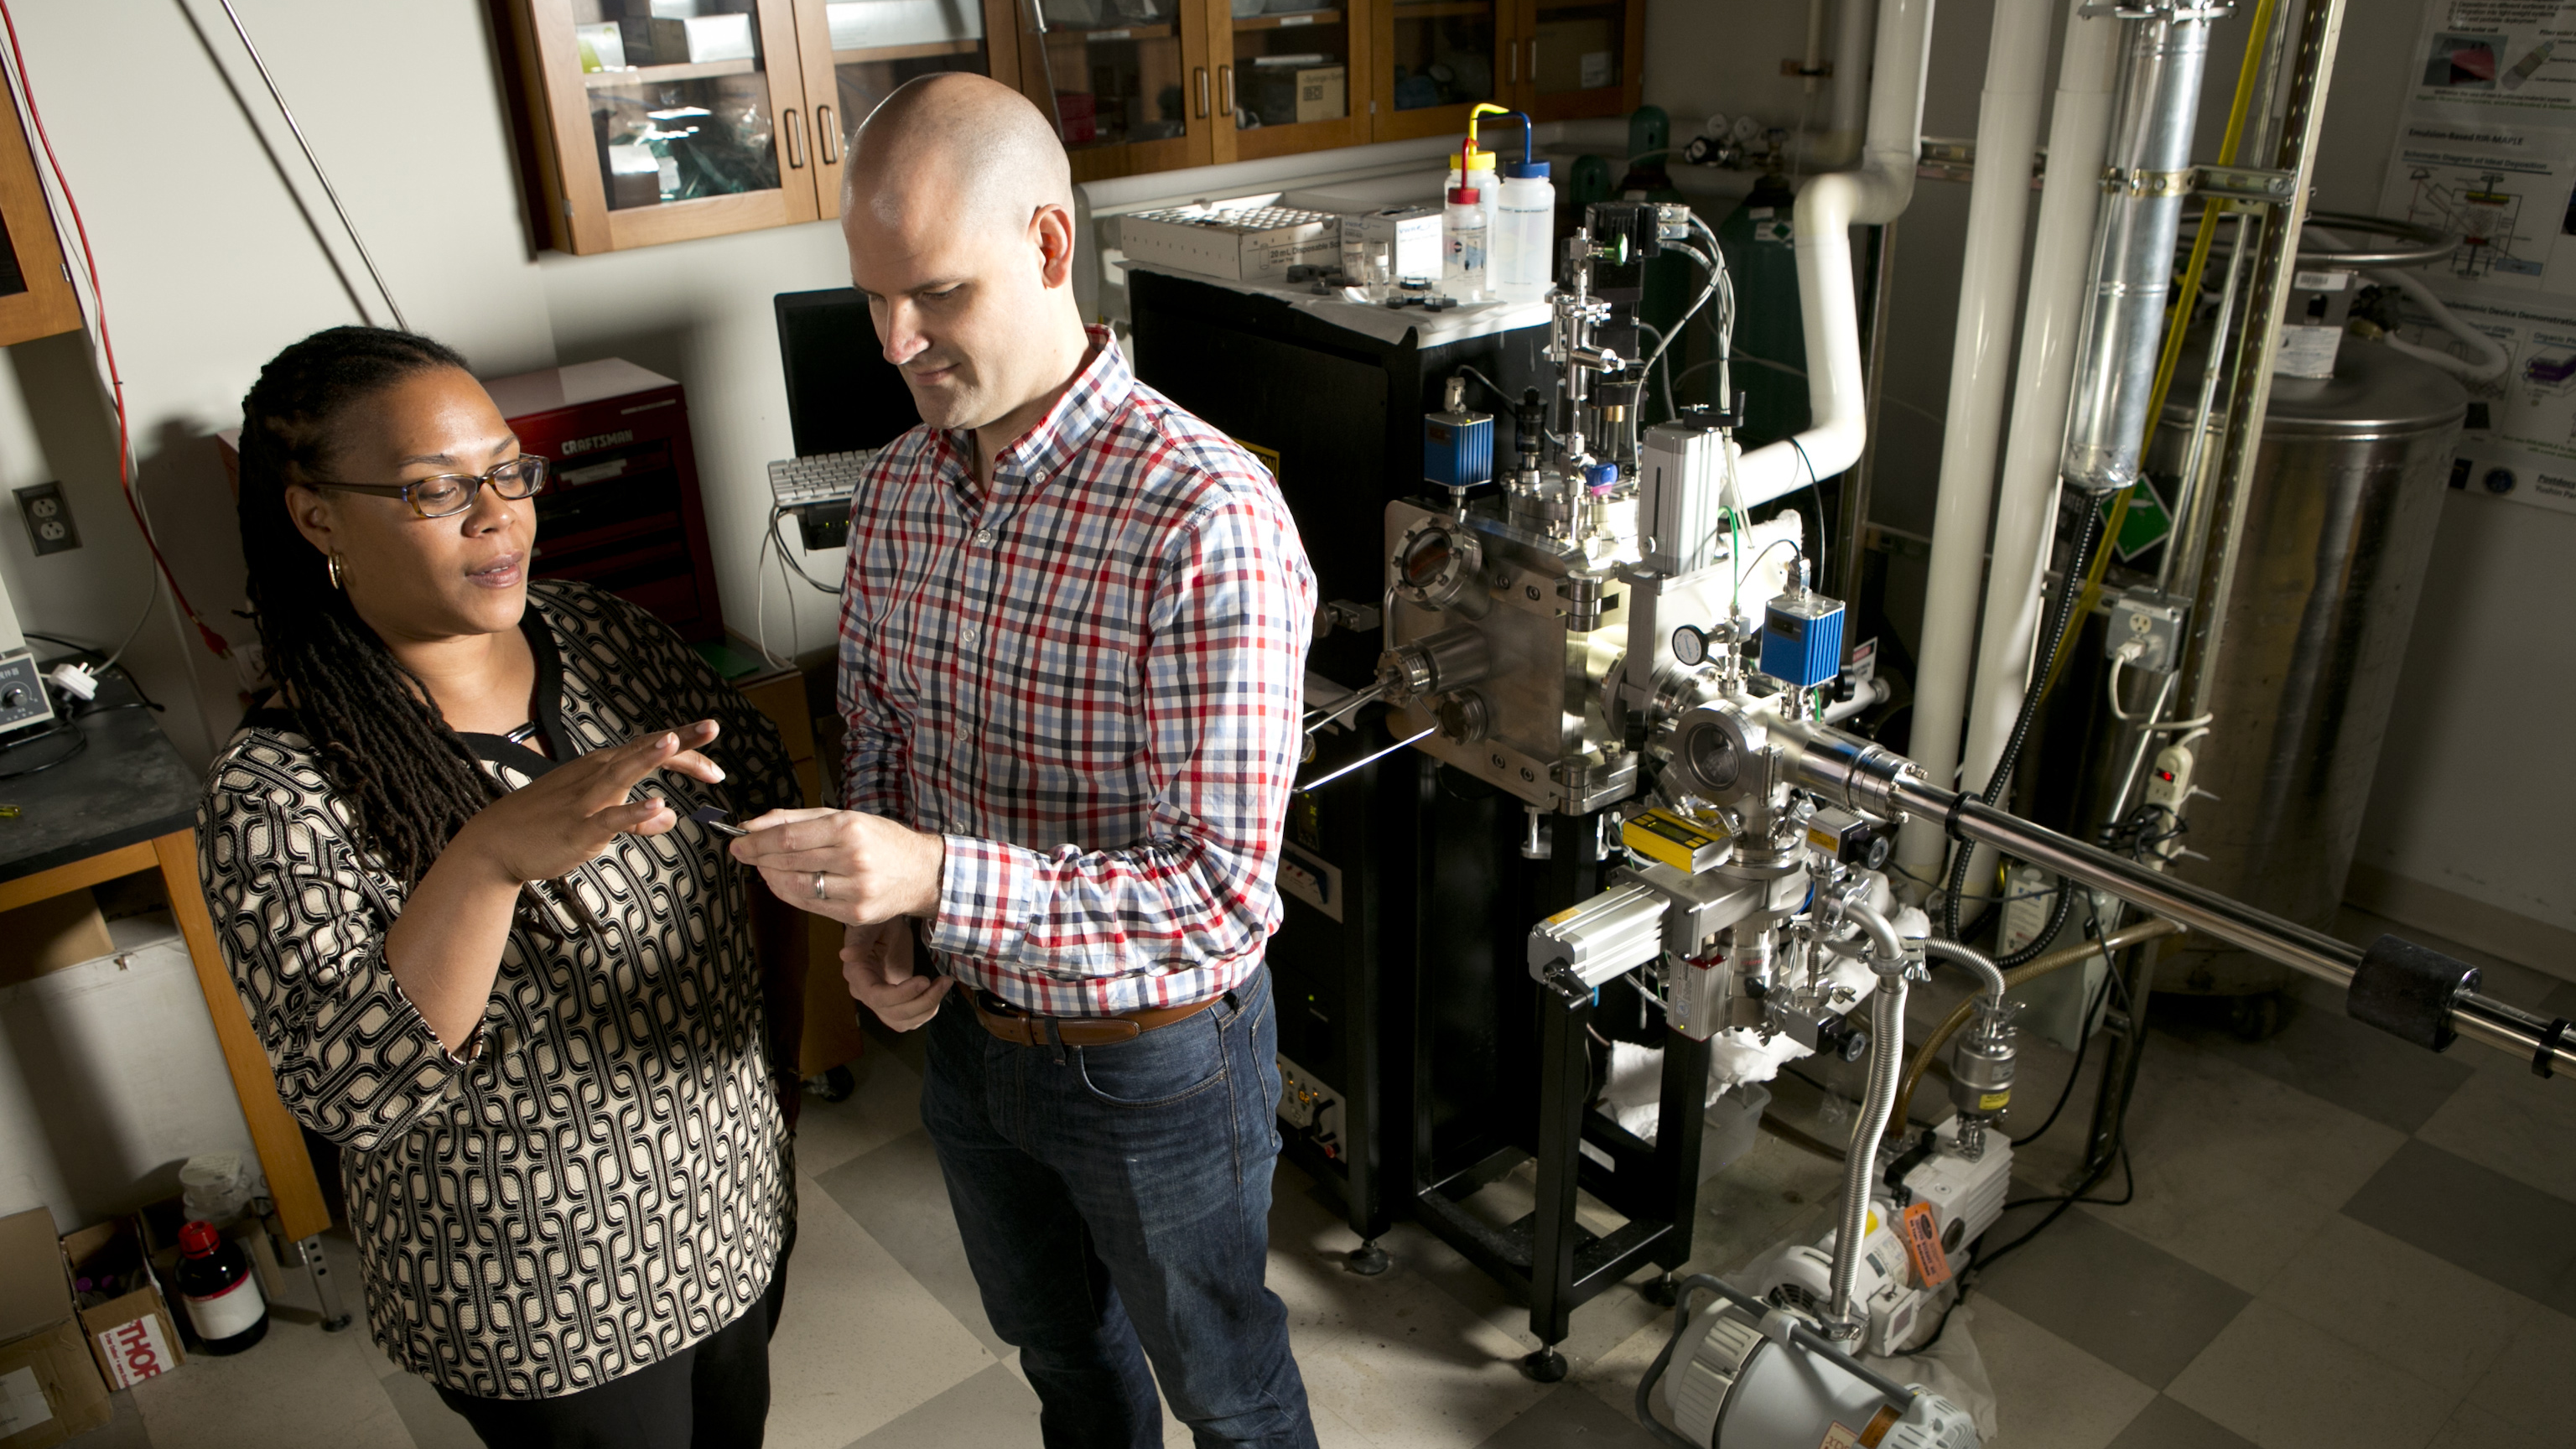 Professor Adrienne Stiff-Roberts with PhD student in lab